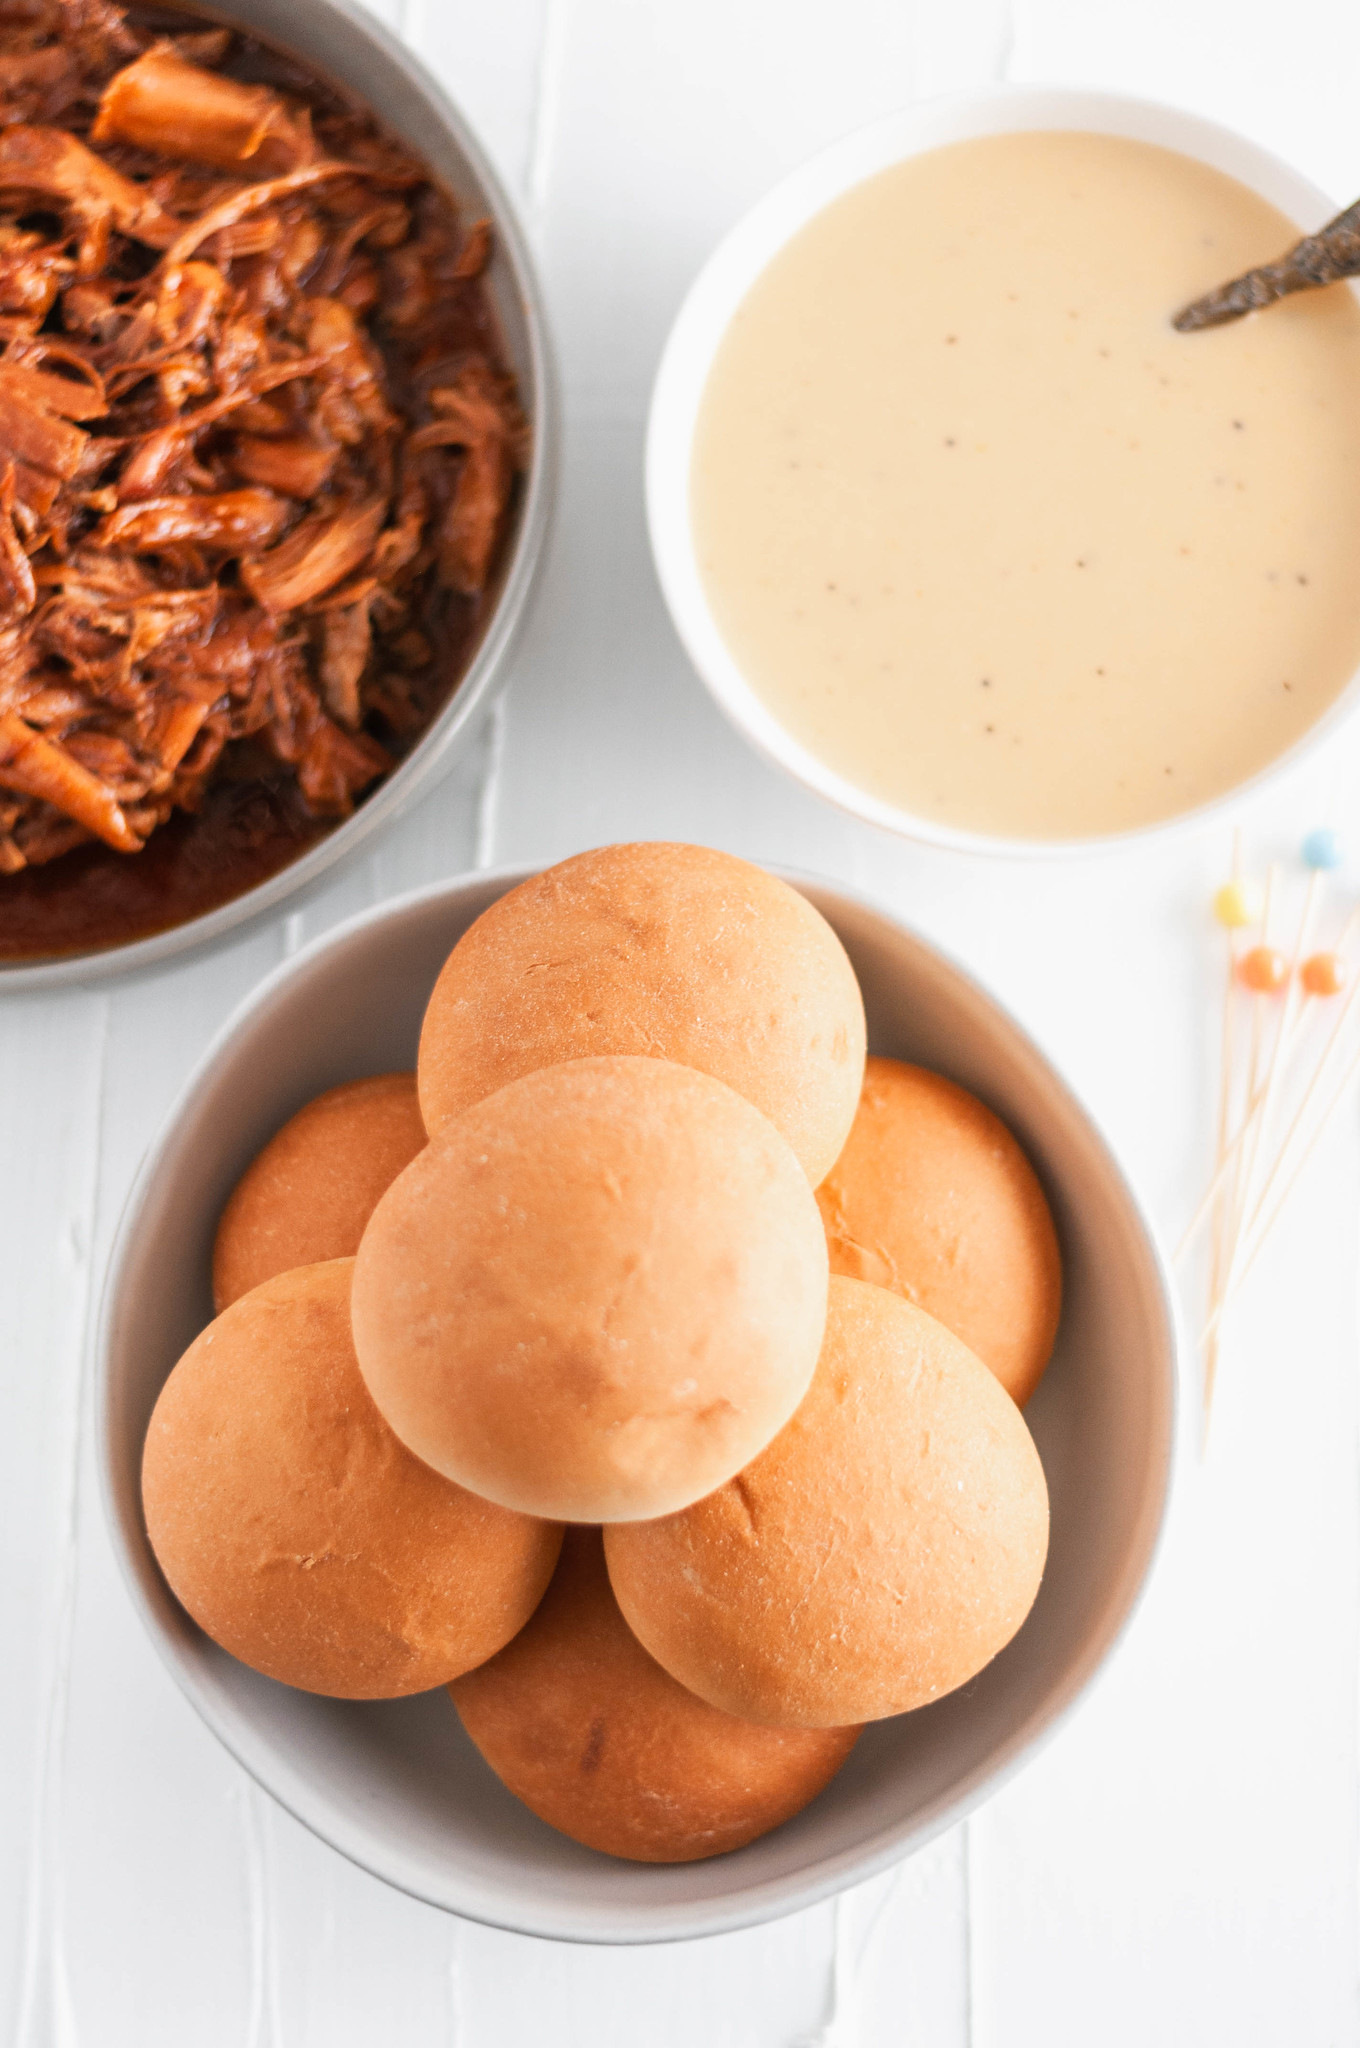 It's football season and that means we need all the delicious party food. Start the game off right with these Cheesy Pulled Pork Sliders. Slow cooker pulled pork, barbecue sauce and a rich, cheesy sauce all loaded atop a soft, pillowy Rhodes Warm-N-Serv roll.